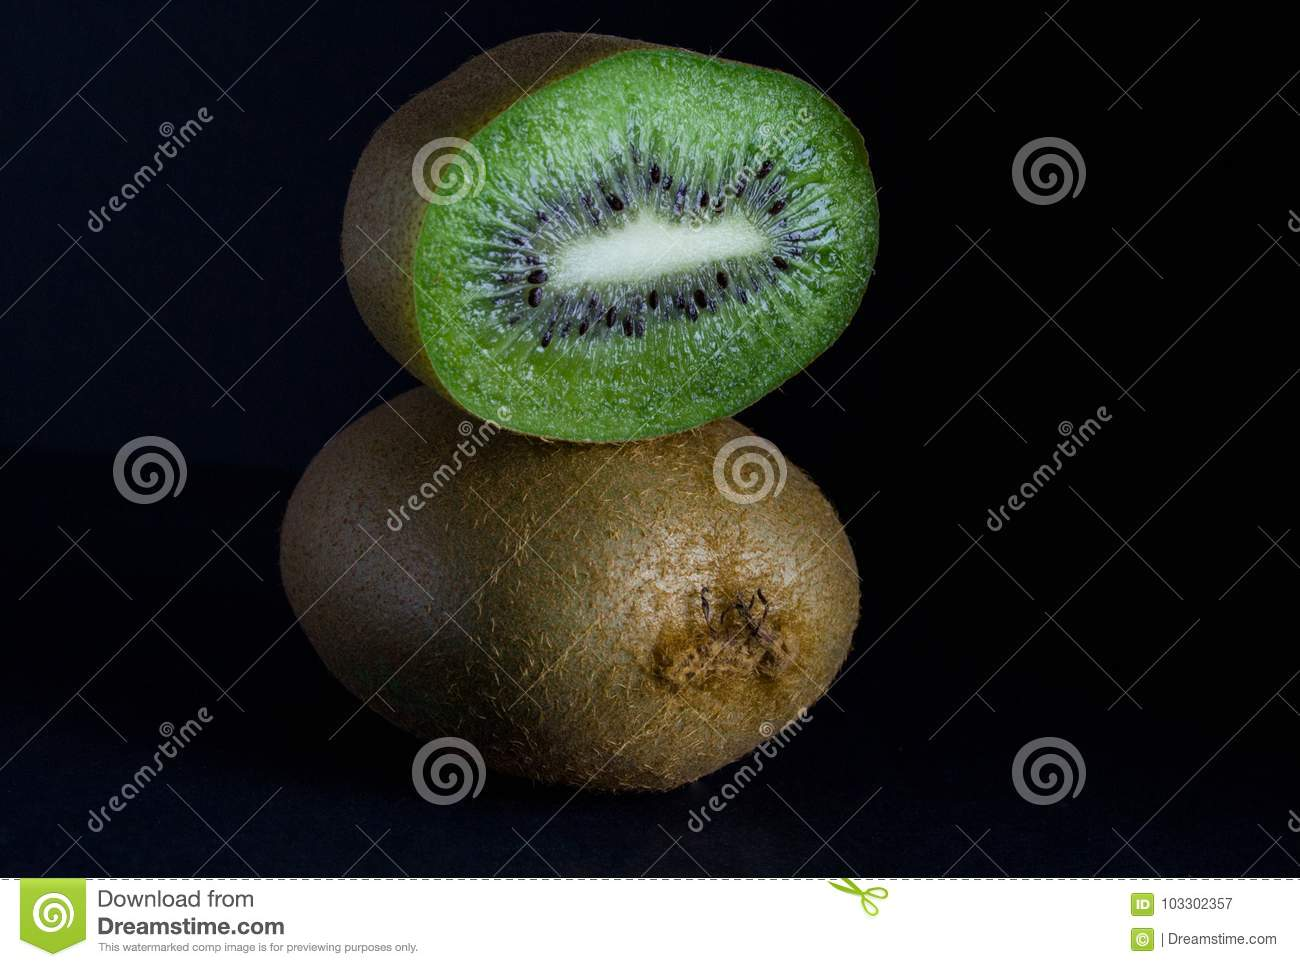 Ripe juicy kiwi